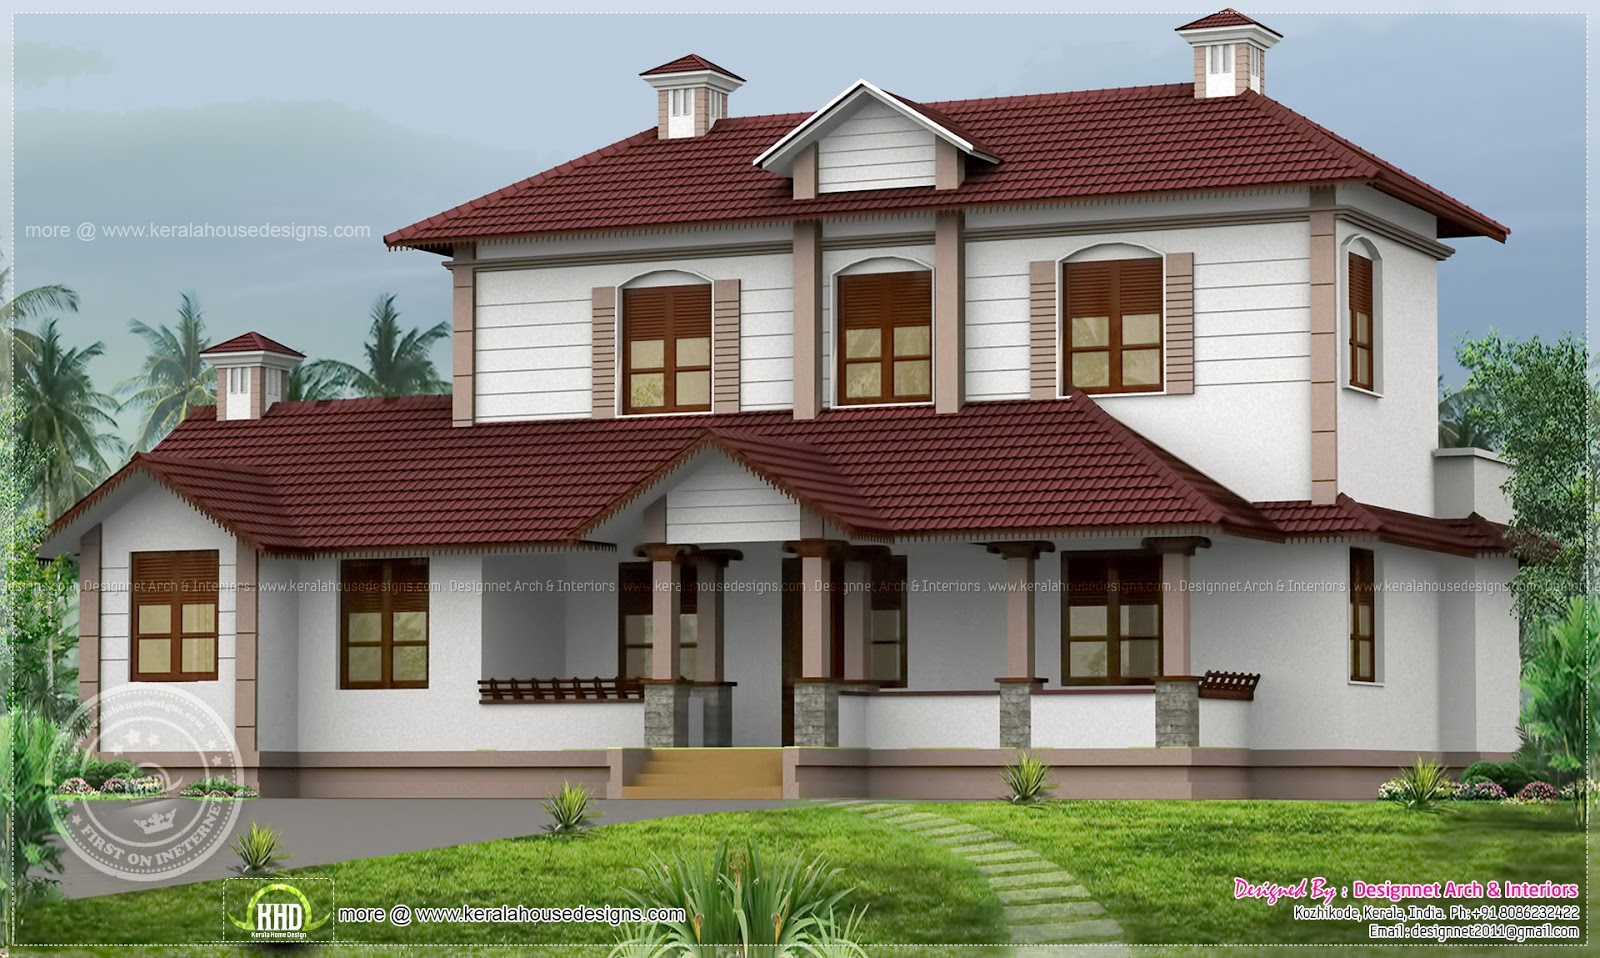 Old house plans in kerala style for Old home plans